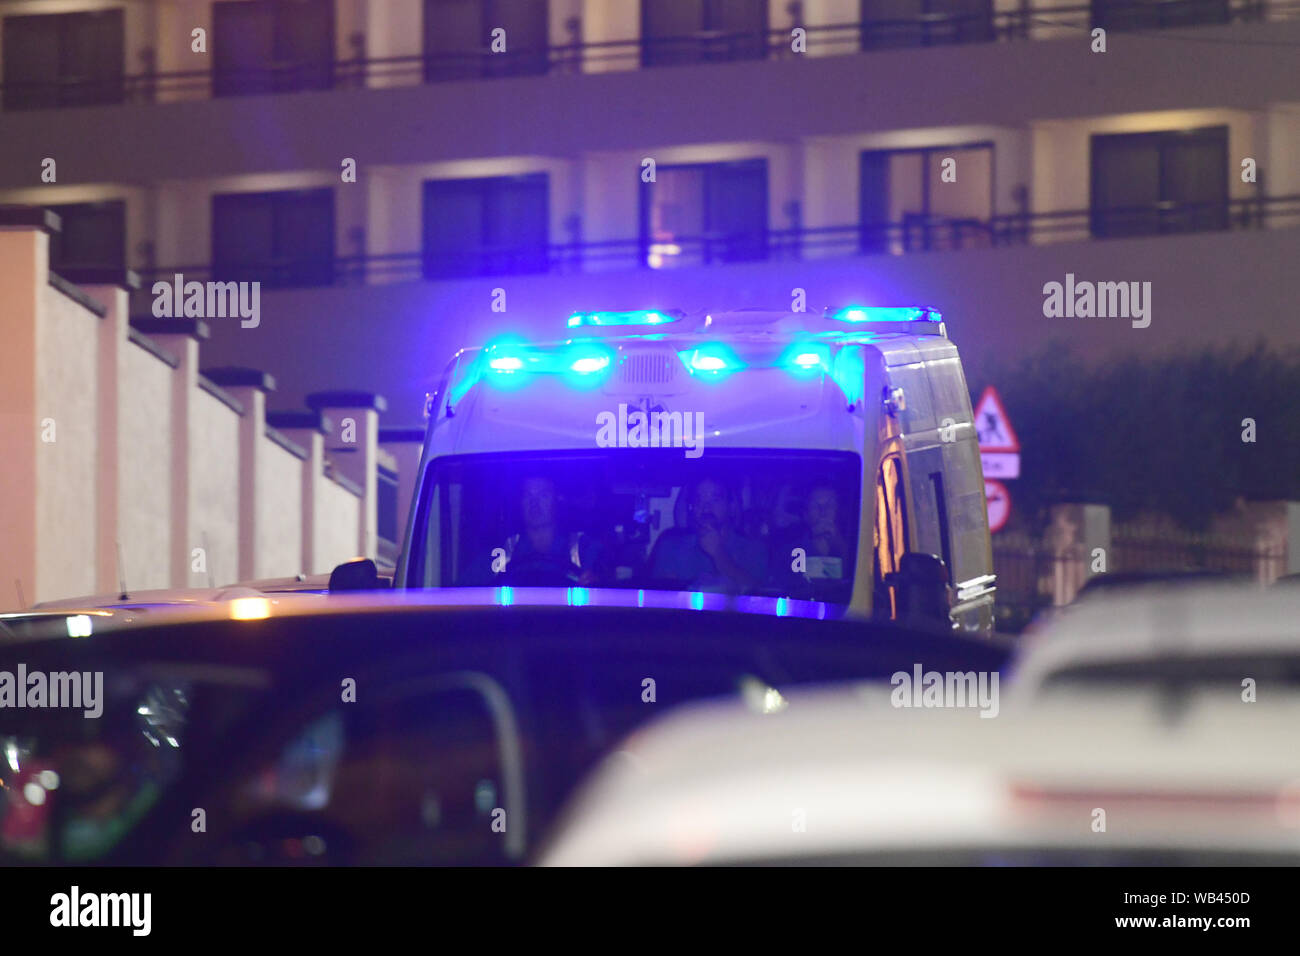 Floriana, Malta. 23rd Aug, 2019. An ambulance moves to the army's Hay Wharf base in Floriana, Malta, Aug. 23, 2019. The Maltese government confirmed that 356 migrants were brought to Malta Friday night on board of a patrol vessel of the Maltese Armed Forces (AFM) after they were transferred from the Norwegian-flagged charity ship Ocean Viking two weeks ago. Credit: Jonathan Borg/Xinhua Credit: Xinhua/Alamy Live News Stock Photo